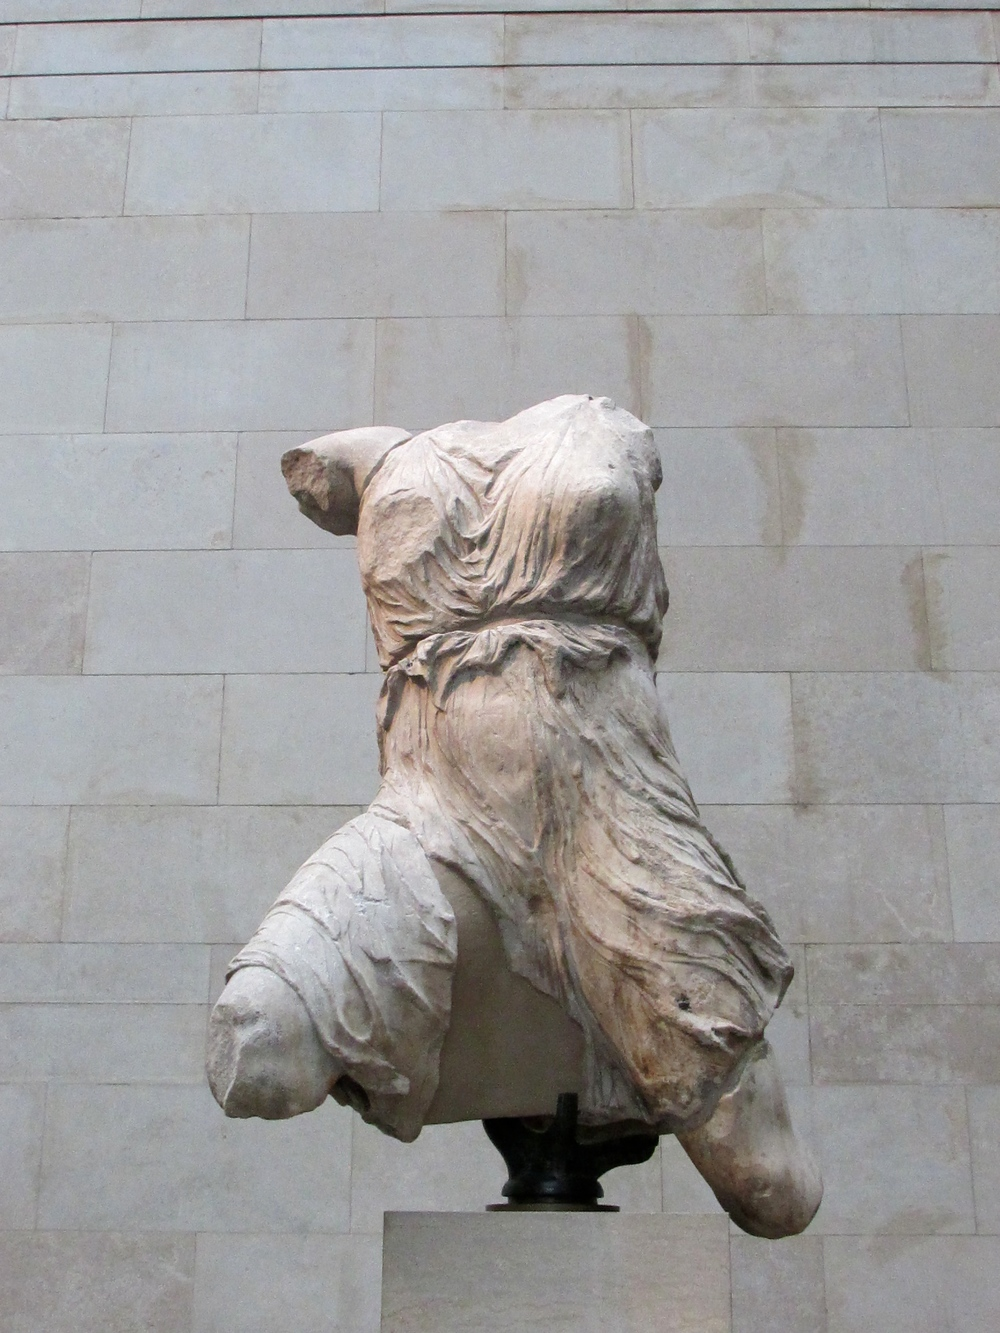 The remaining part of a sculpture from the west pediment of the Parthenon.